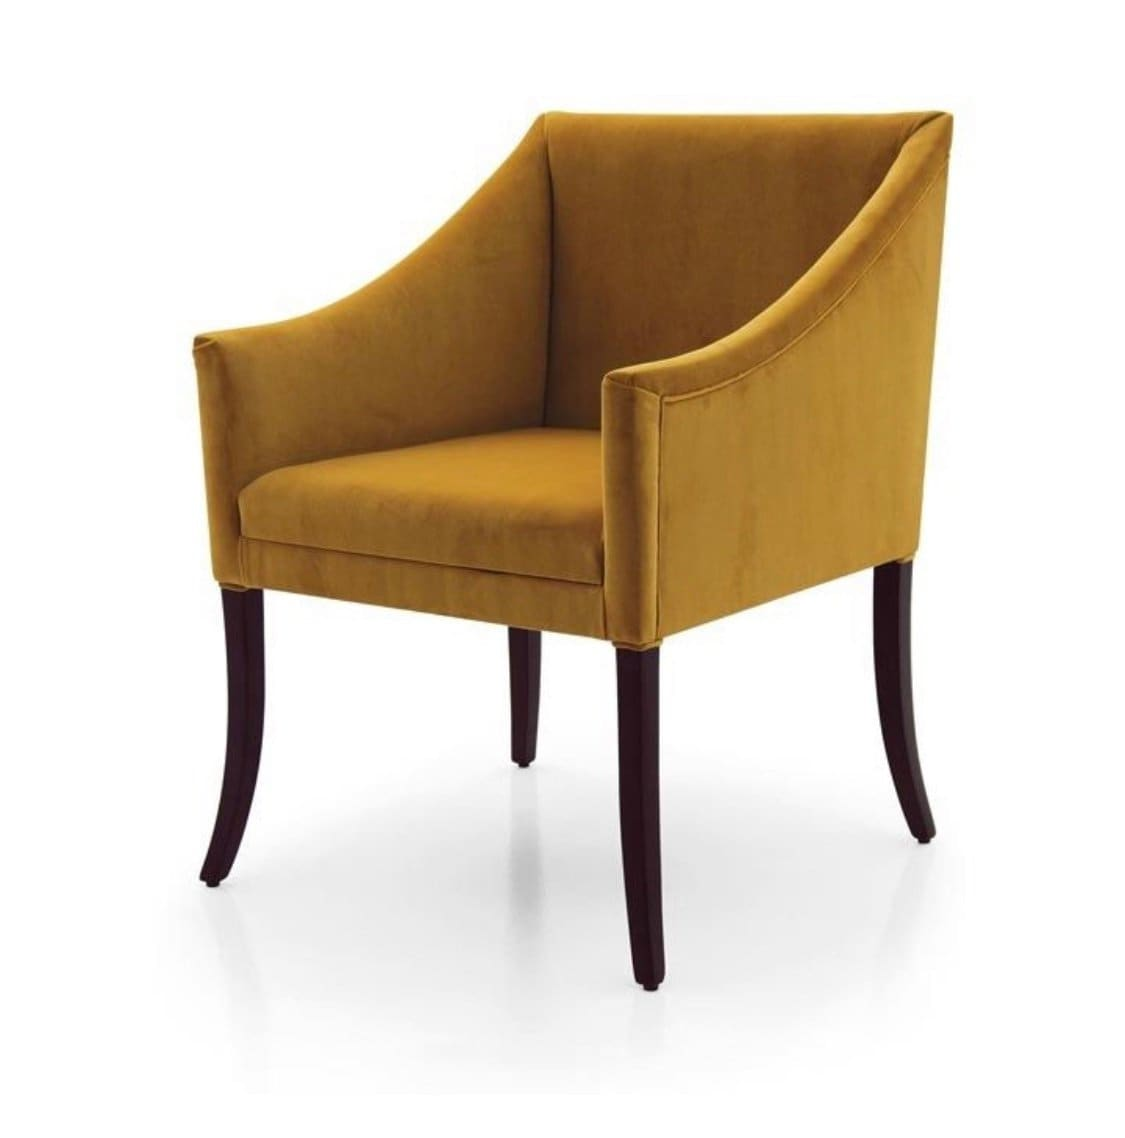 Contatore Tub Chair Armchair Bespoke Custom Finished Wood Upholstered To Order Handmade Seating By Millmax